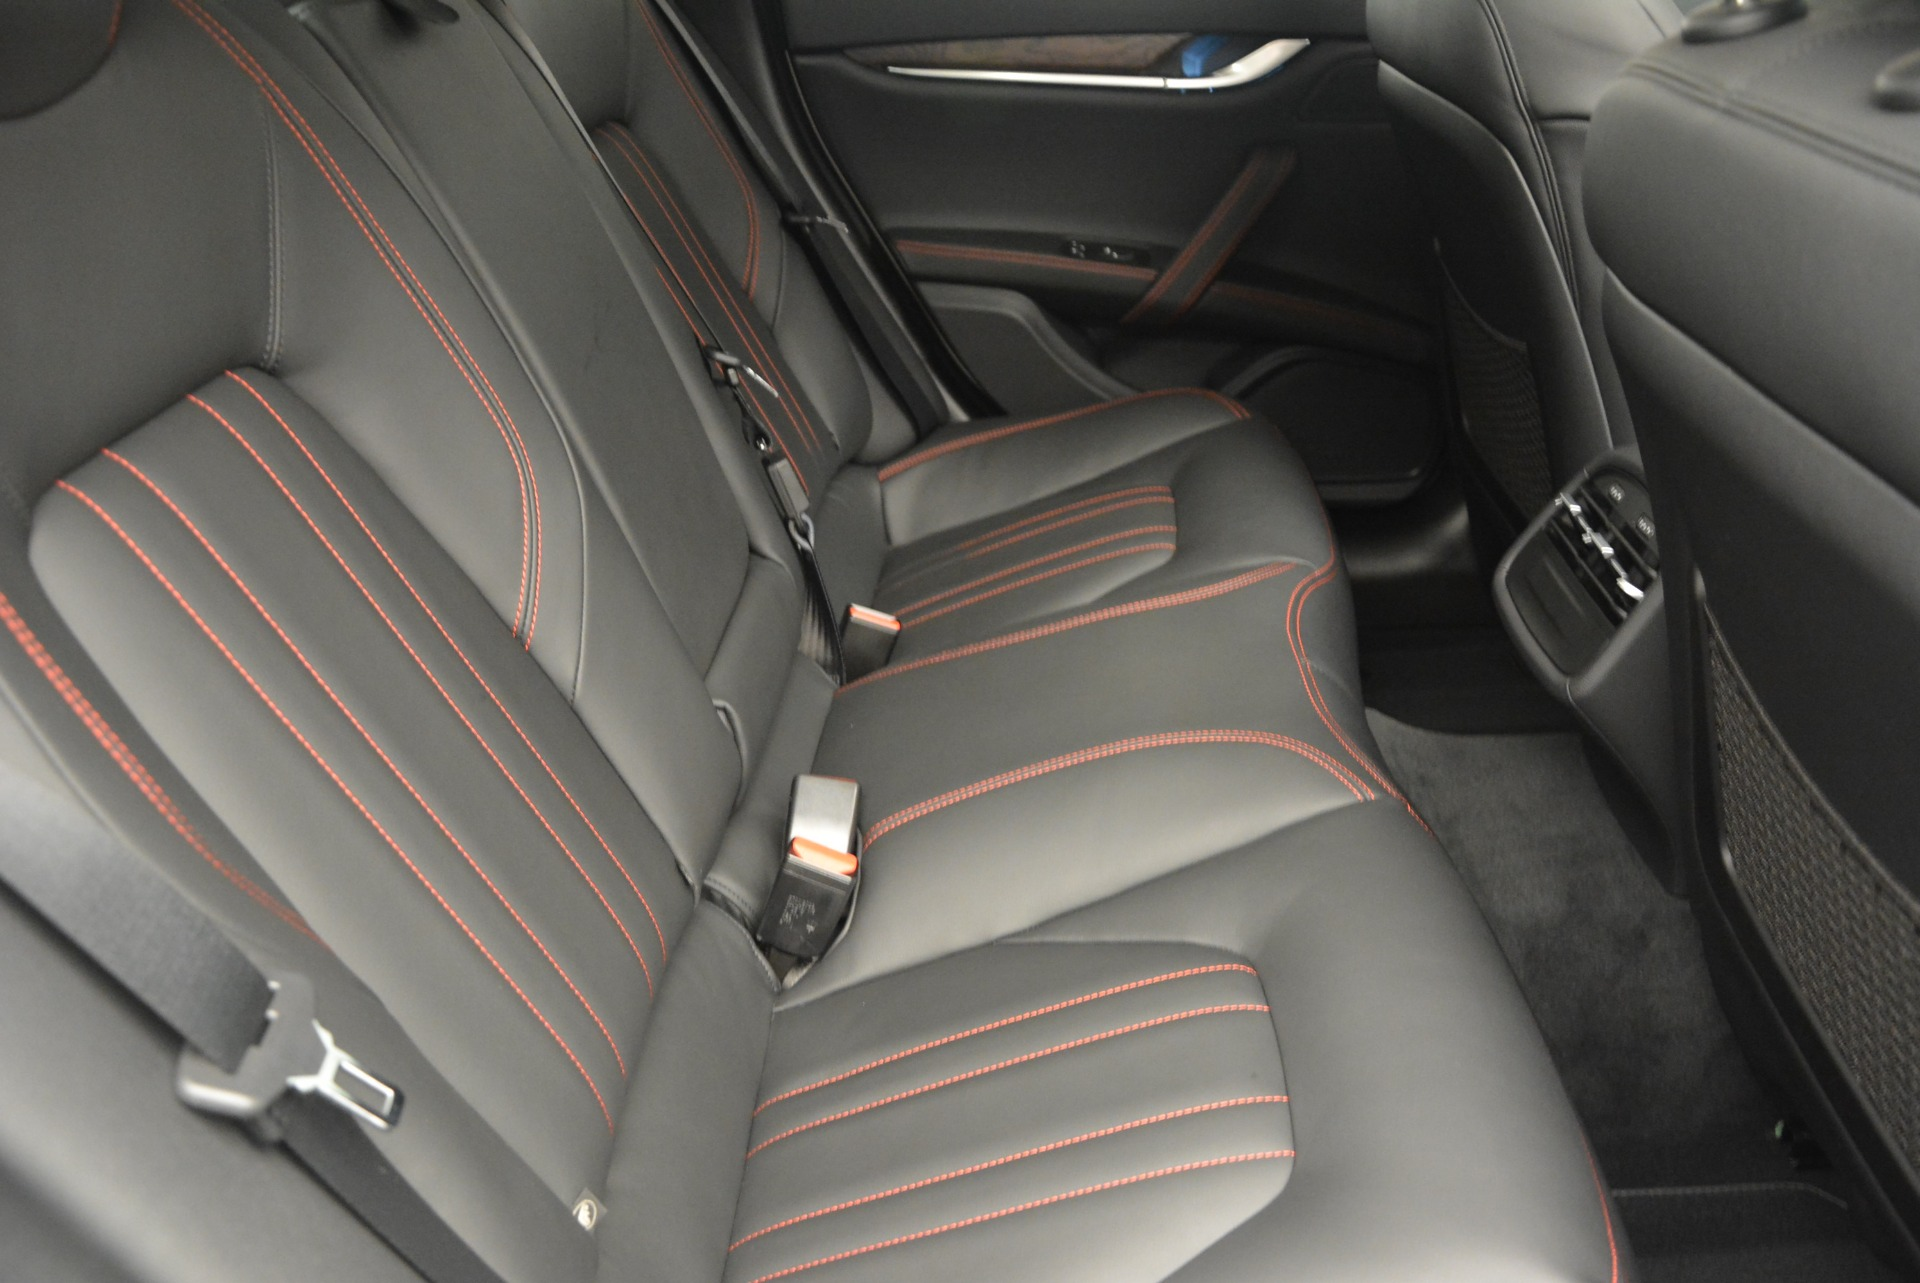 Used 2015 Maserati Ghibli S Q4 For Sale In Westport, CT 2070_p21